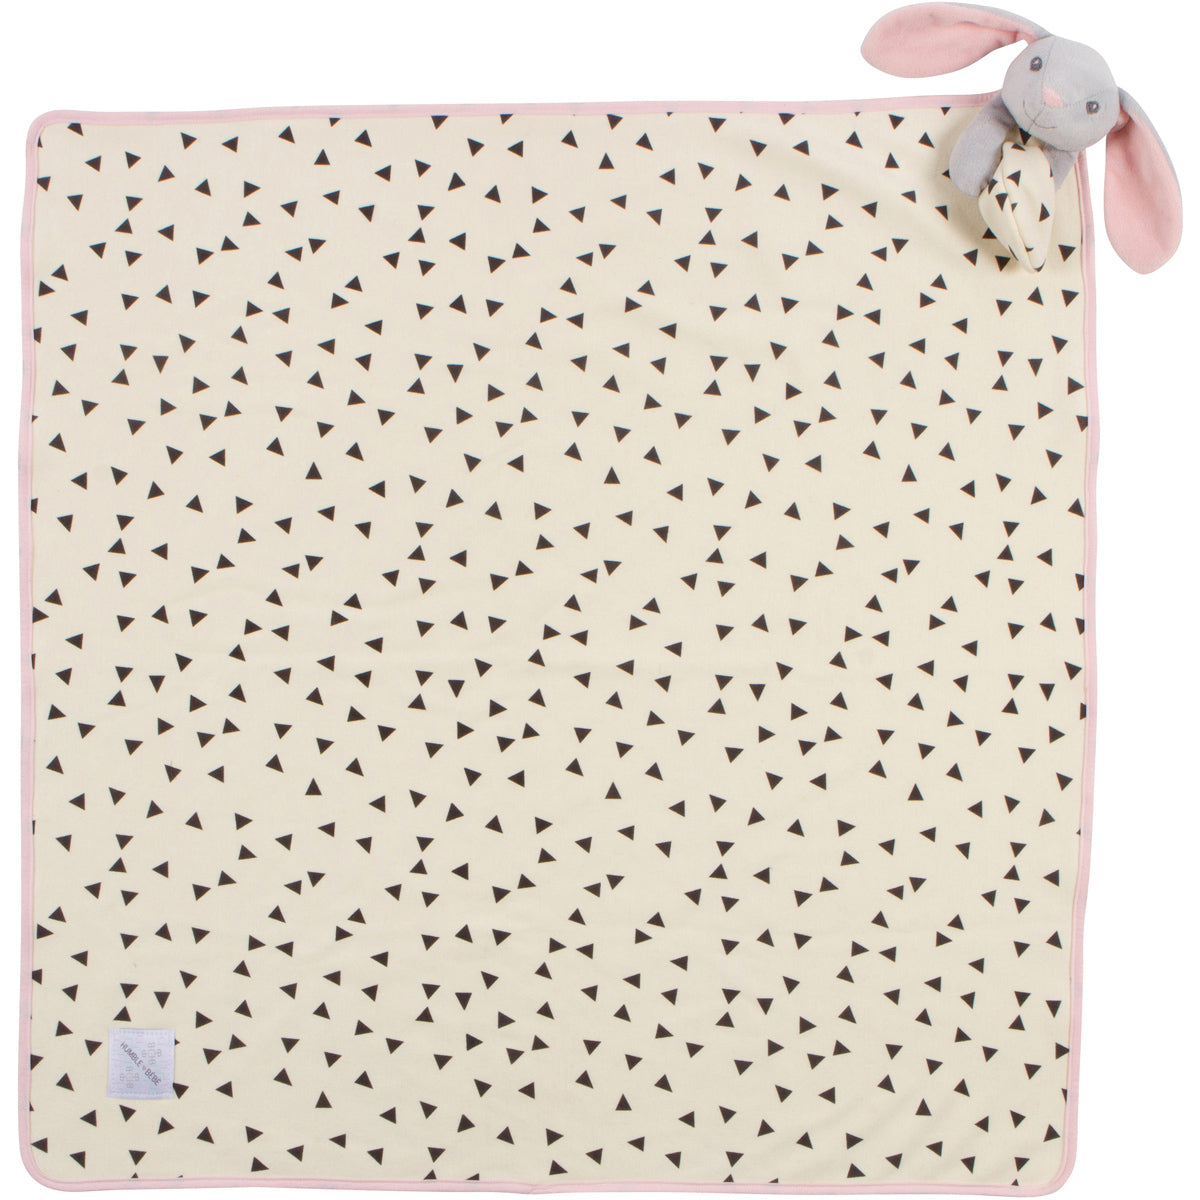 "Deluxe Lovey Blanket - Remy the Bunny - 30""x30"""